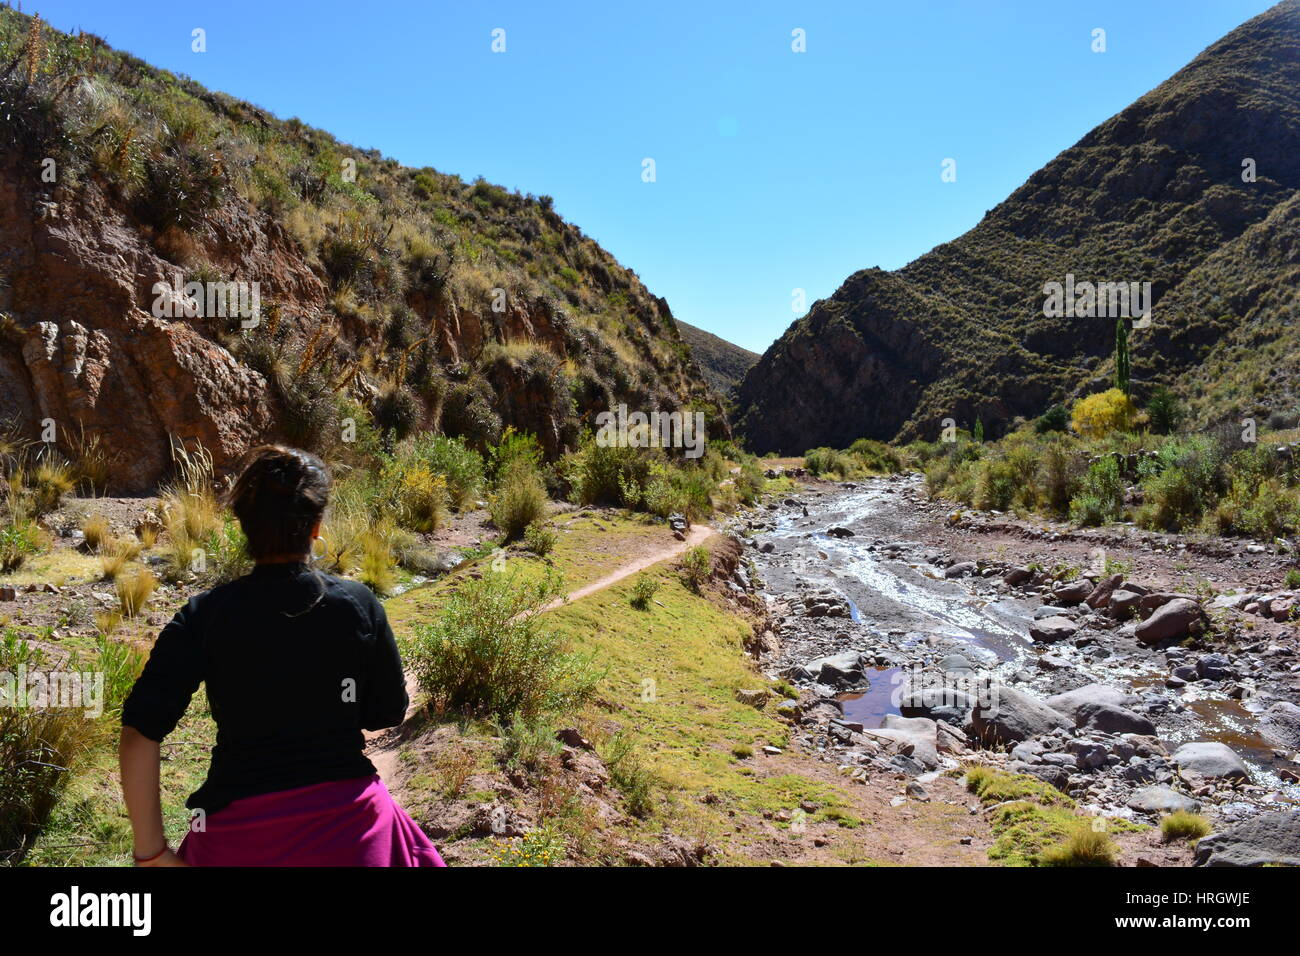 Backpacker woman hiking in the beautiful landscape of the Andes Mountain Range in the region of Macha, Potosí, - Stock Image